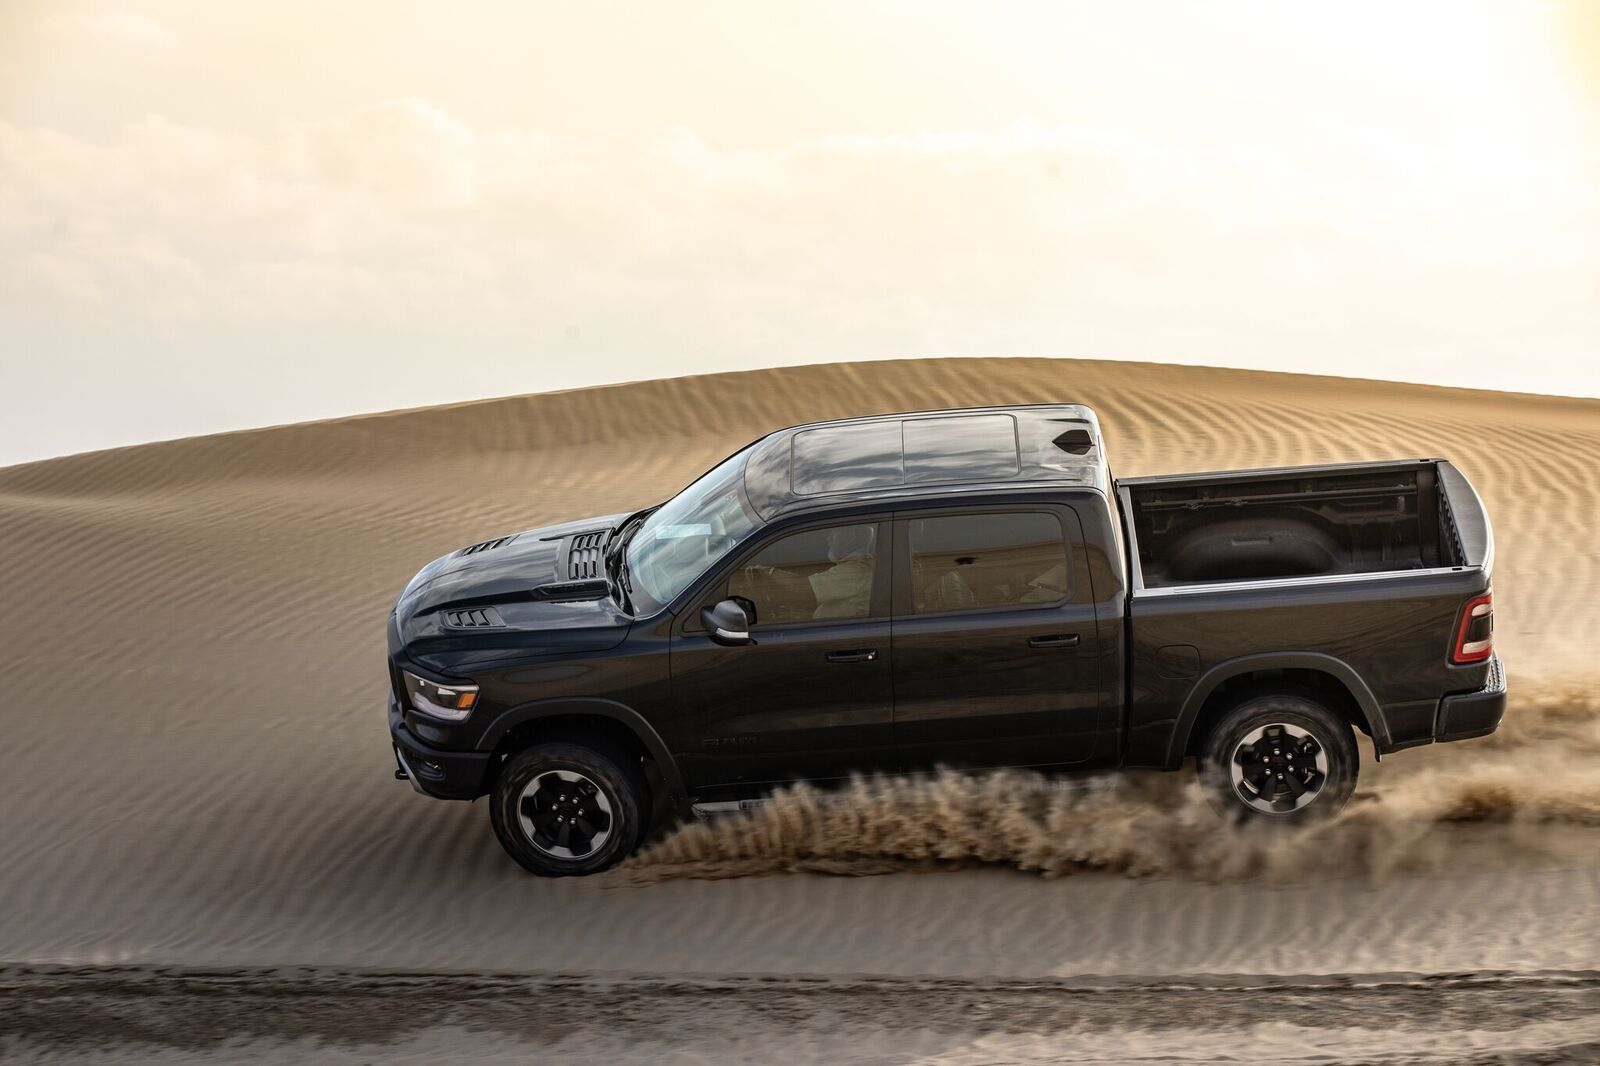 Ground-breaking innovation, premium luxury, and no compromise capability: The All-New 2019 Ram 1500